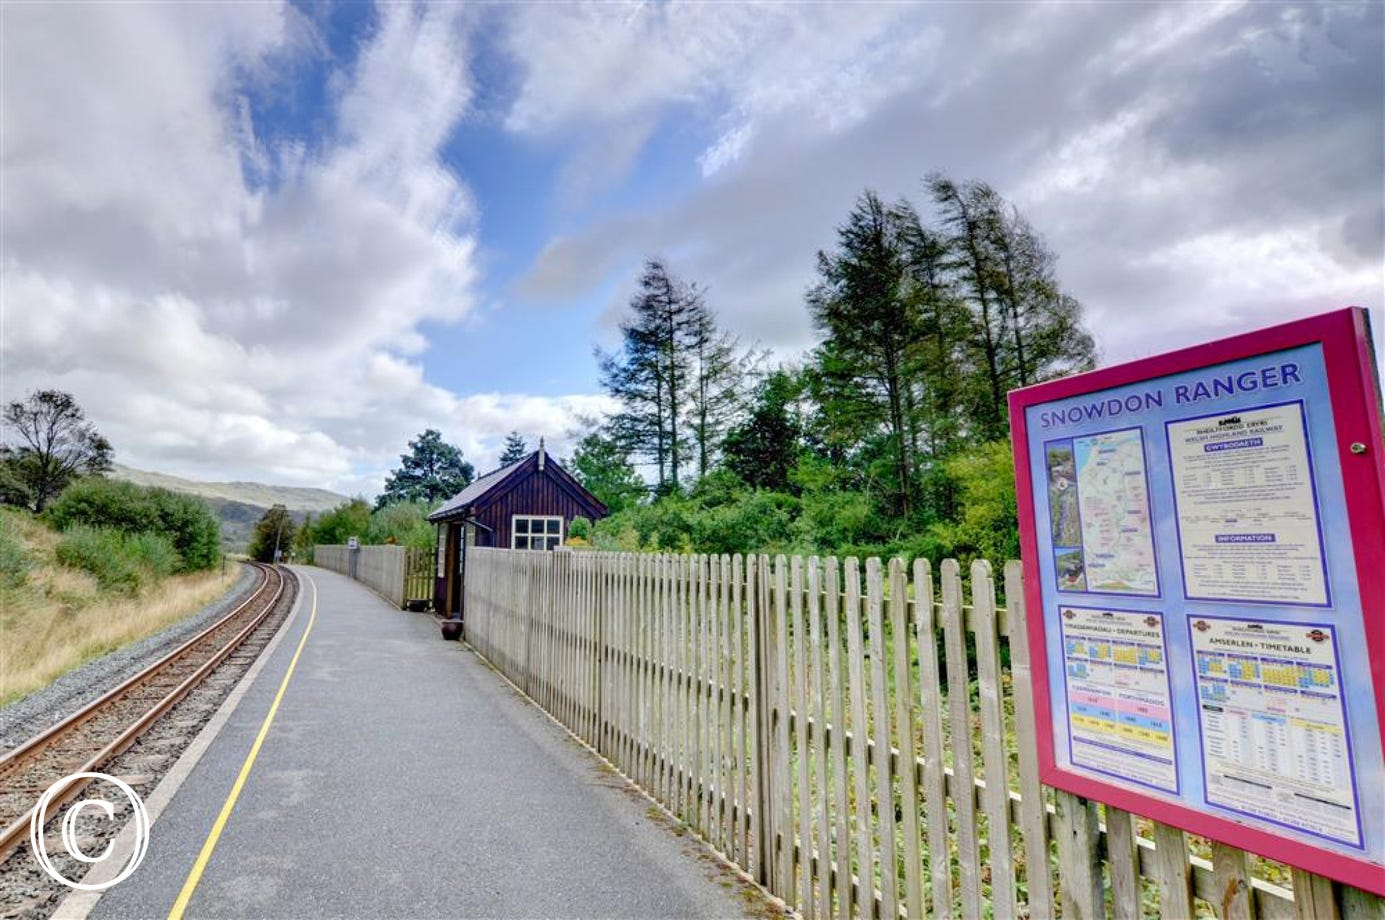 Just beyond the cottage is the Snowdon Ranger Station platform on the Welsh Highland Railway